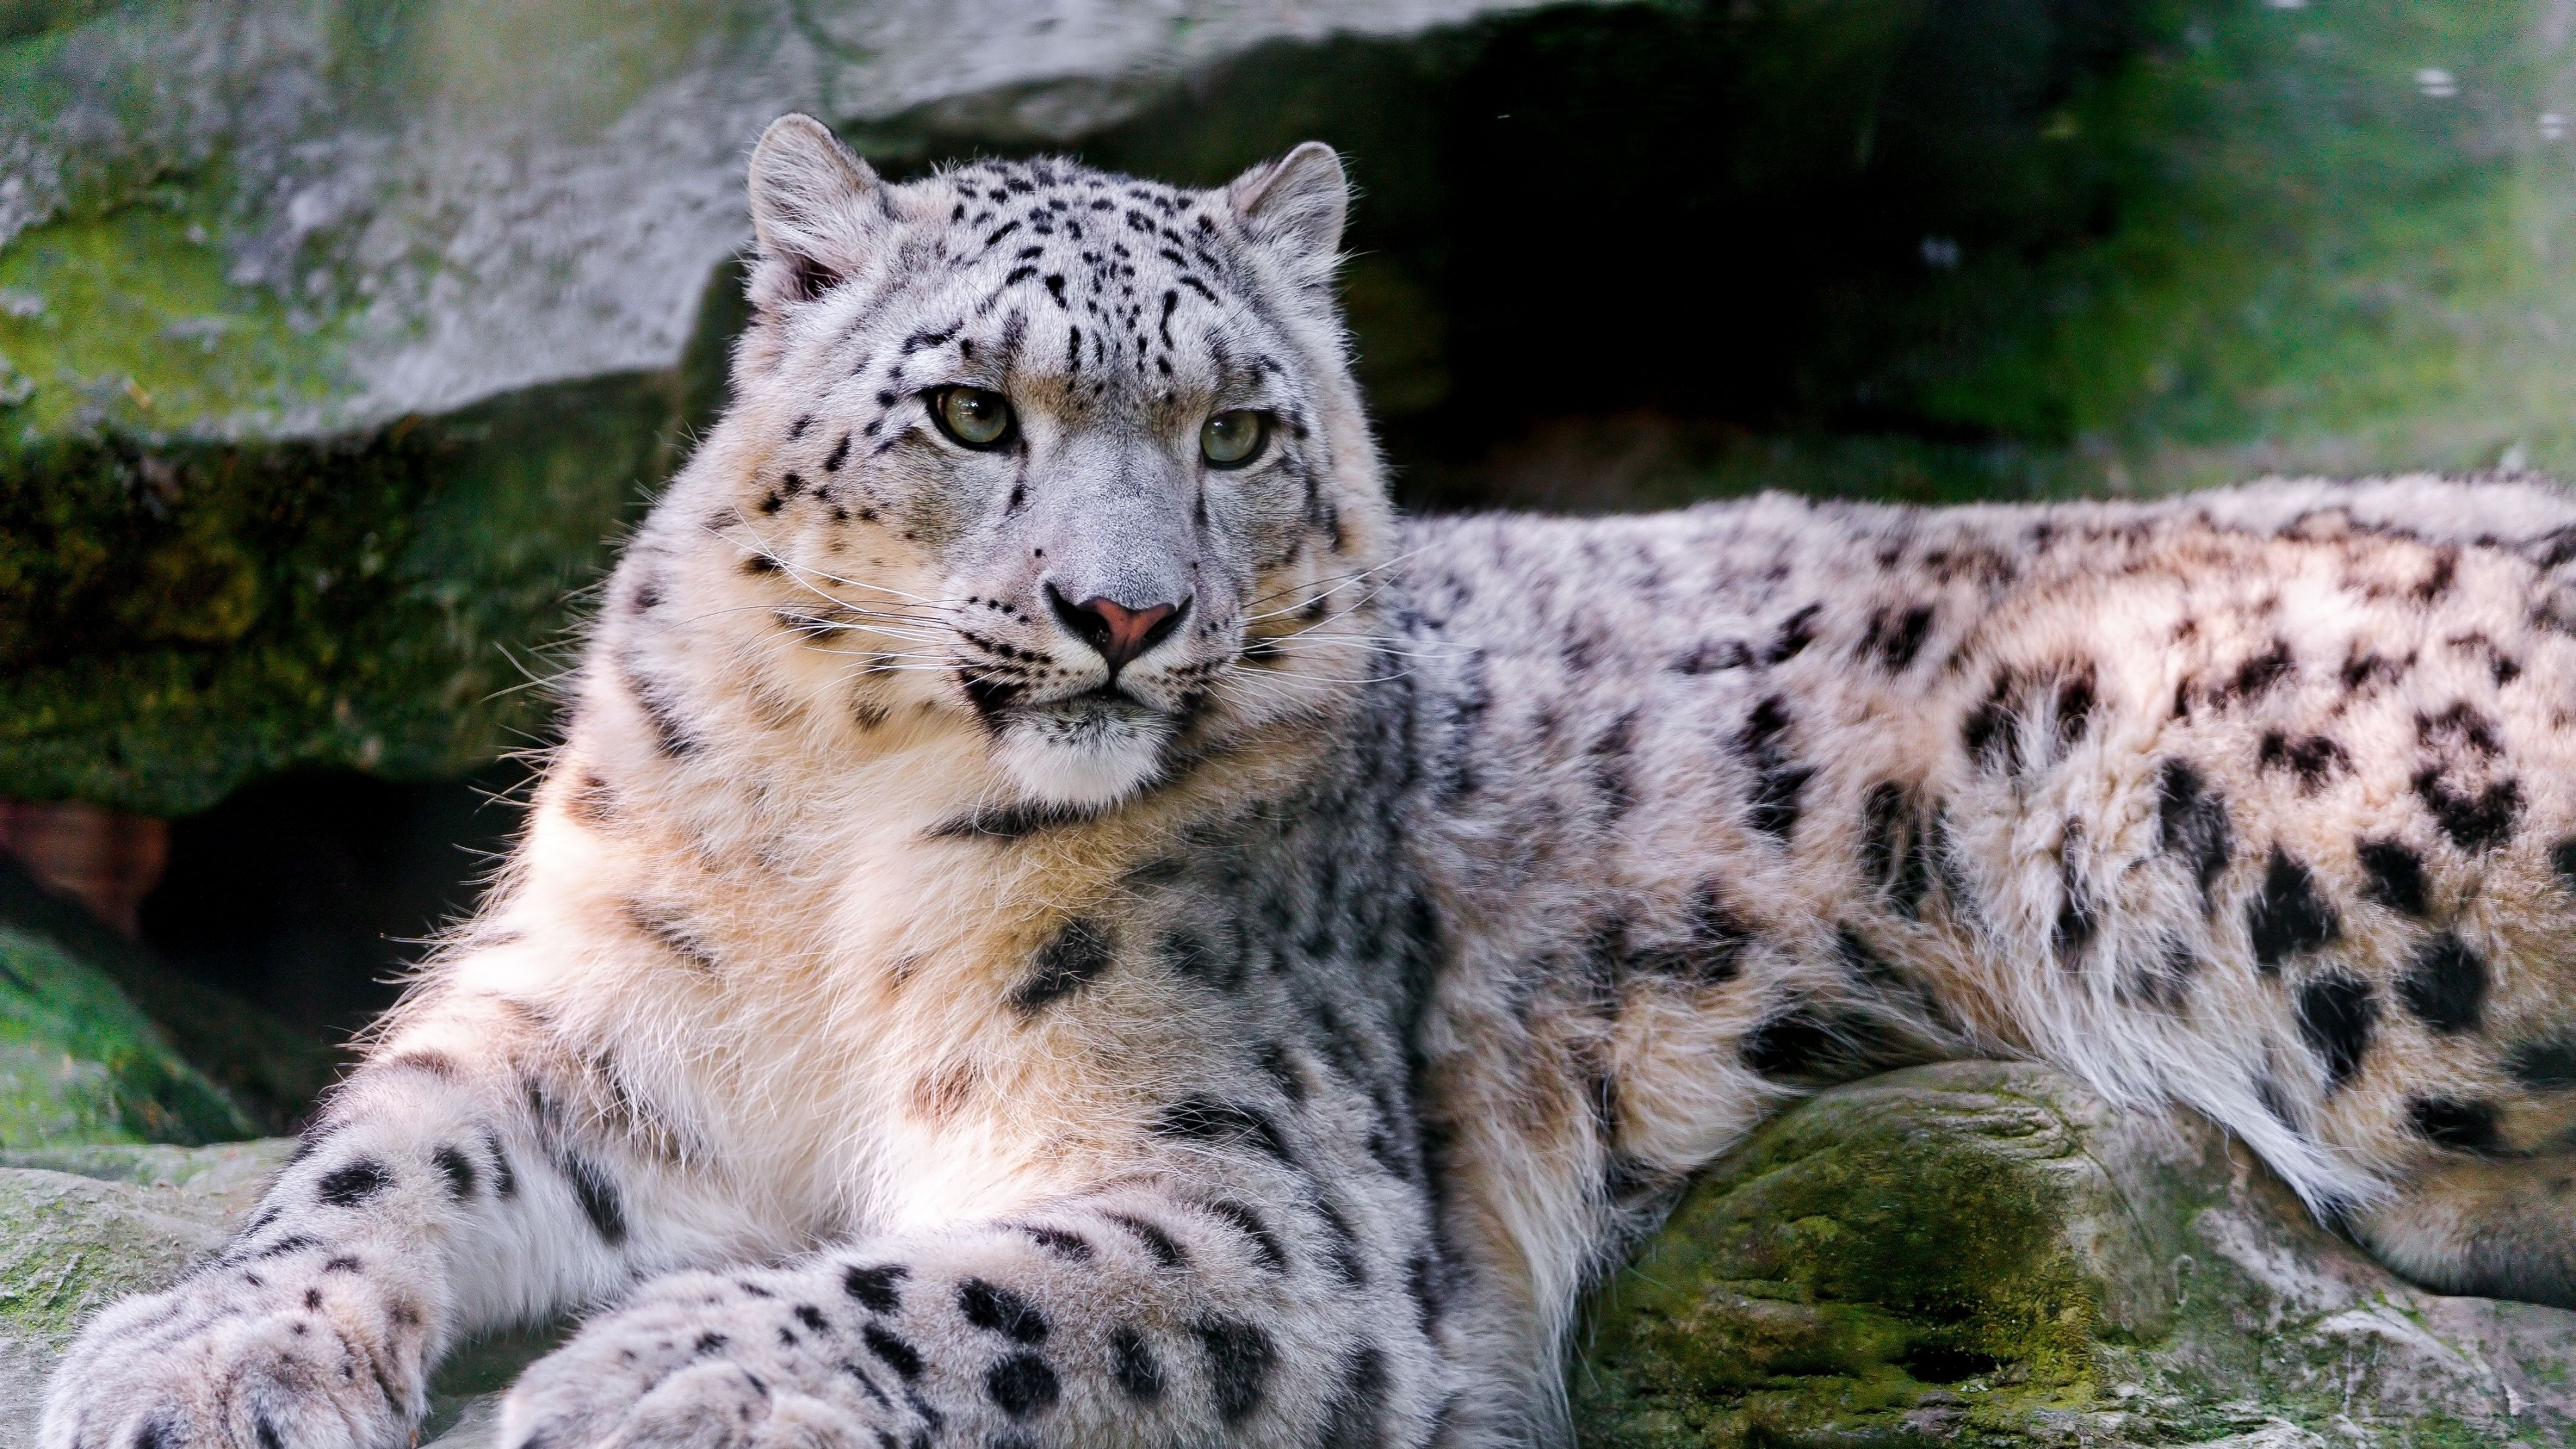 Cute Owl Wallpaper Iphone Wallpaper Snow Leopard Wild Nature Eyes Animals 596